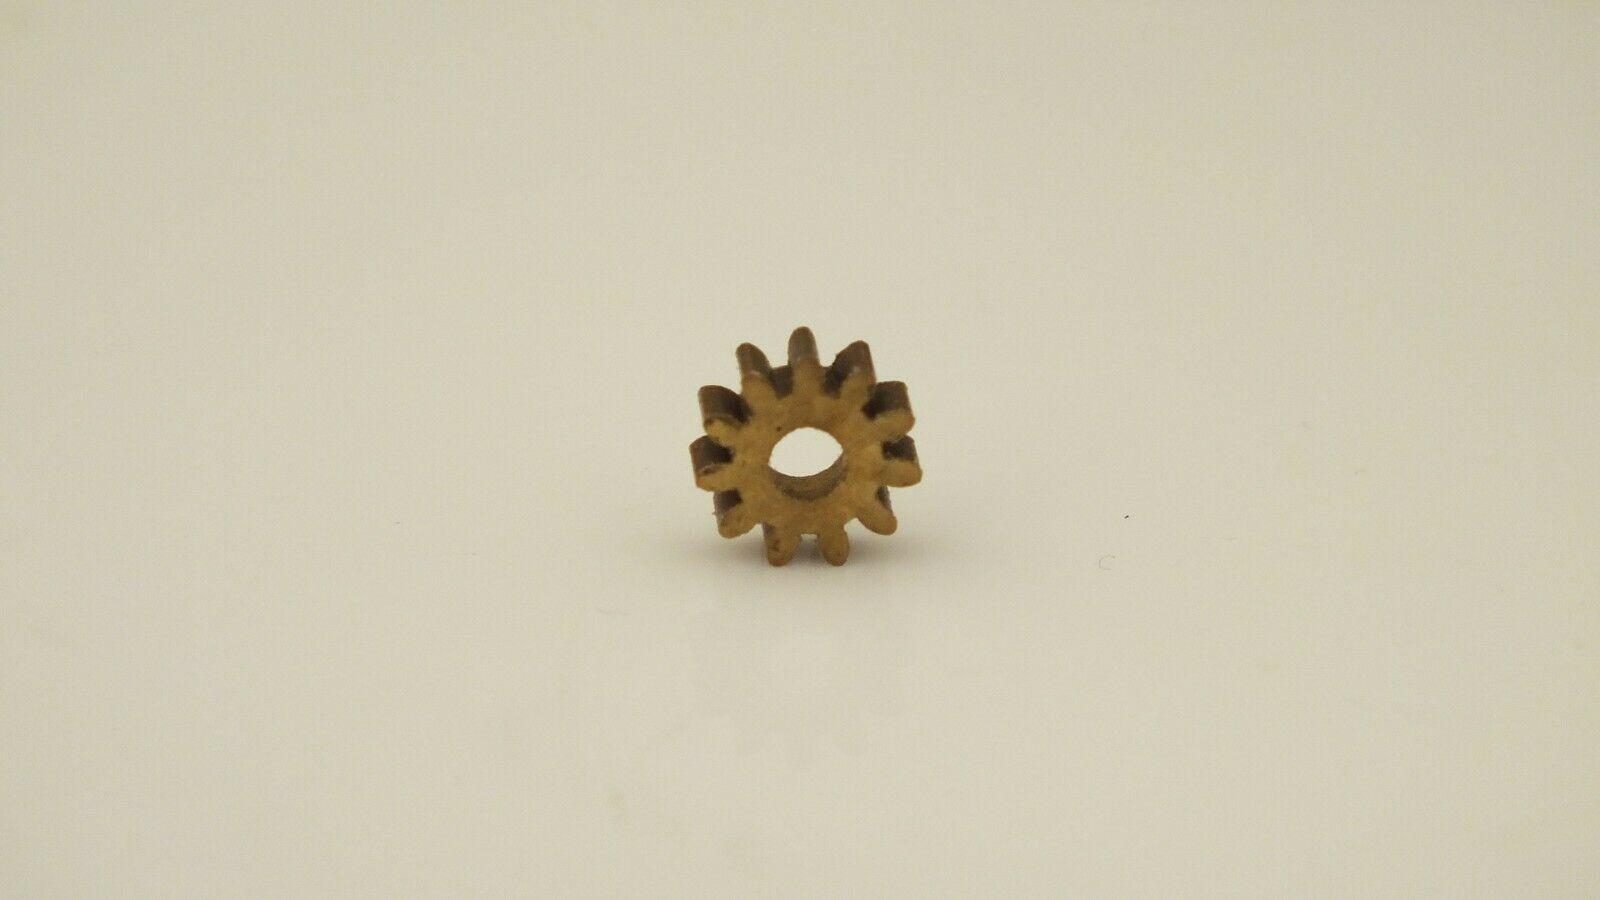 S2290 / X8440 # HORNBY TRIANG RINGFIELD SPUR GEAR   11 TOOTH    U1E